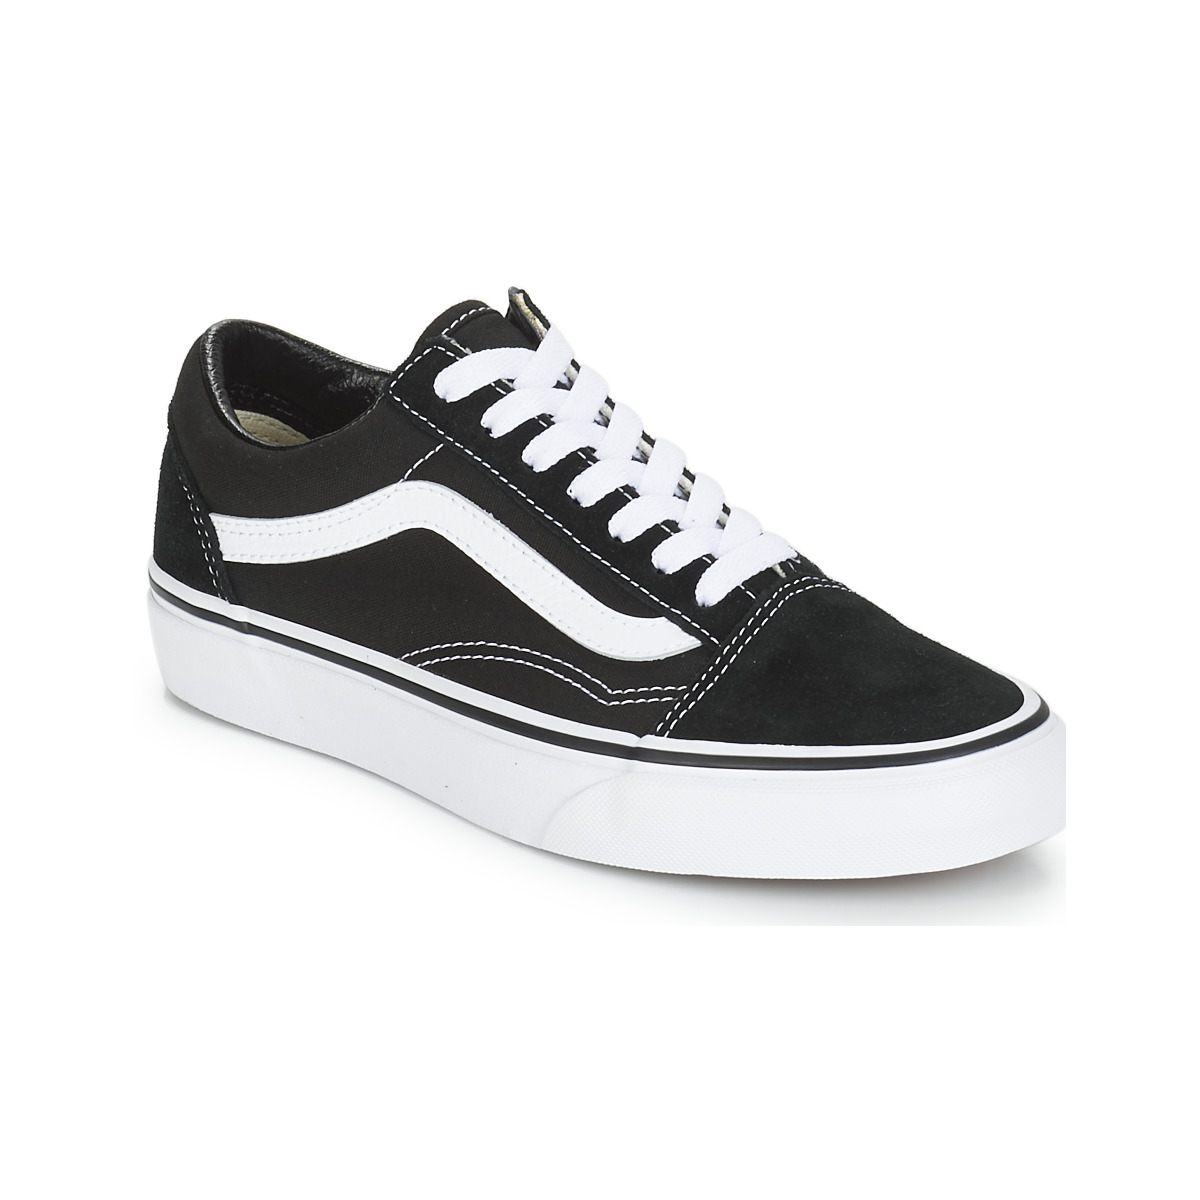 Vans Old Skool Dessin